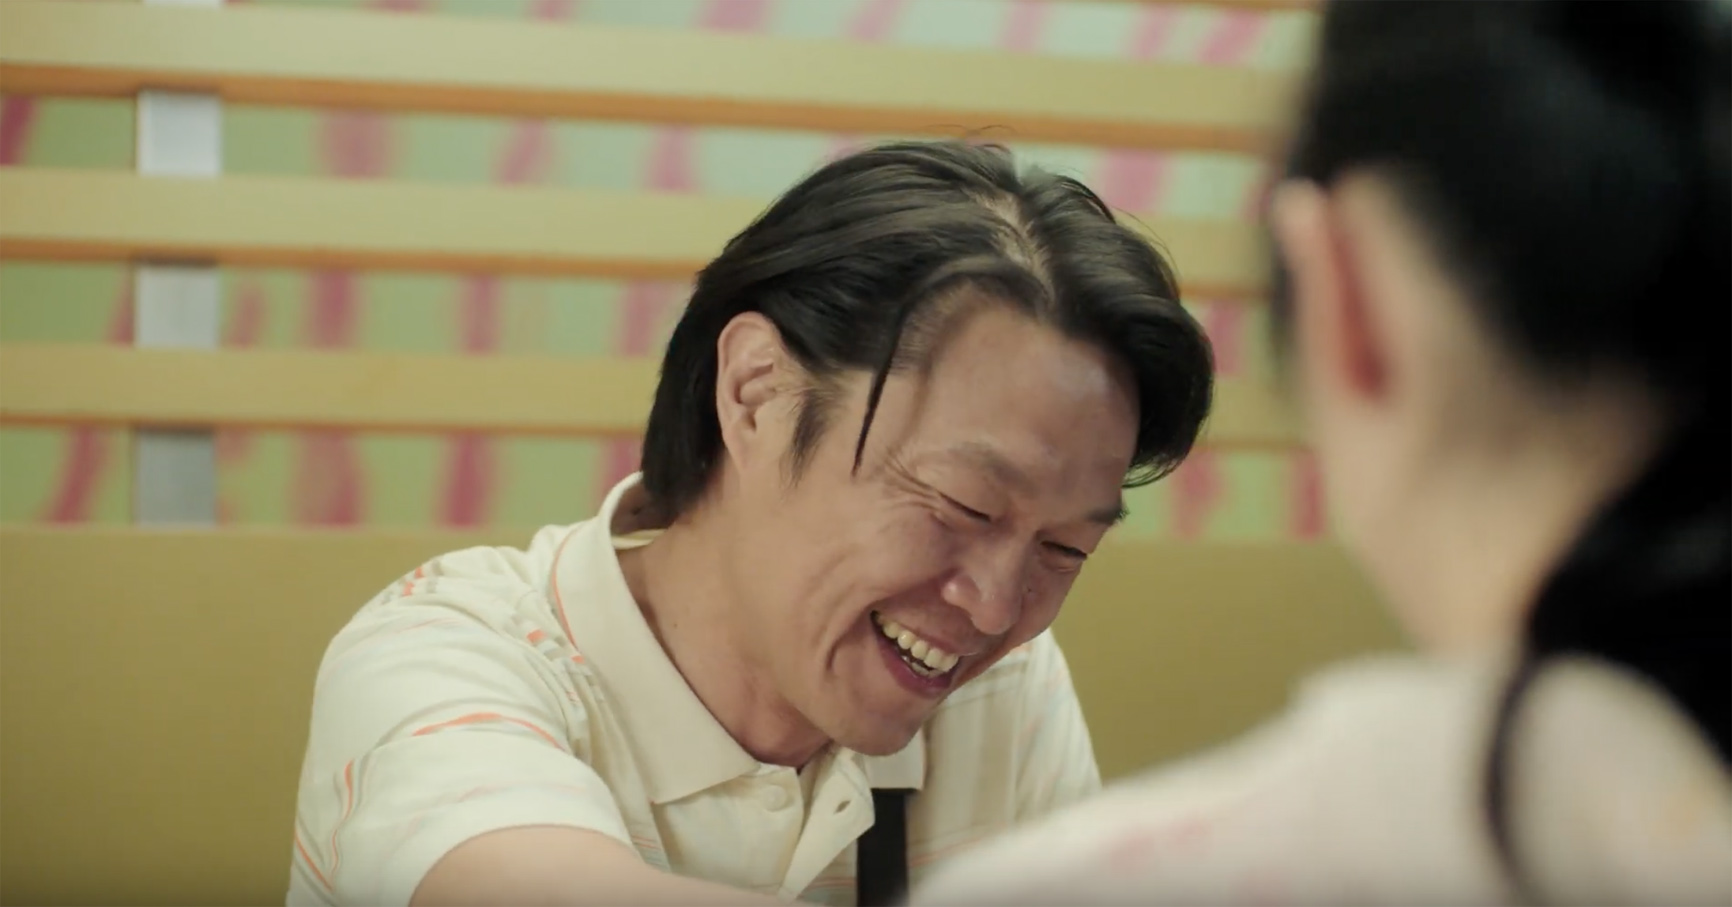 A father struggles with the adolescent teenage growth of his little girl in new McDonald's film via Leo Burnett Taiwan